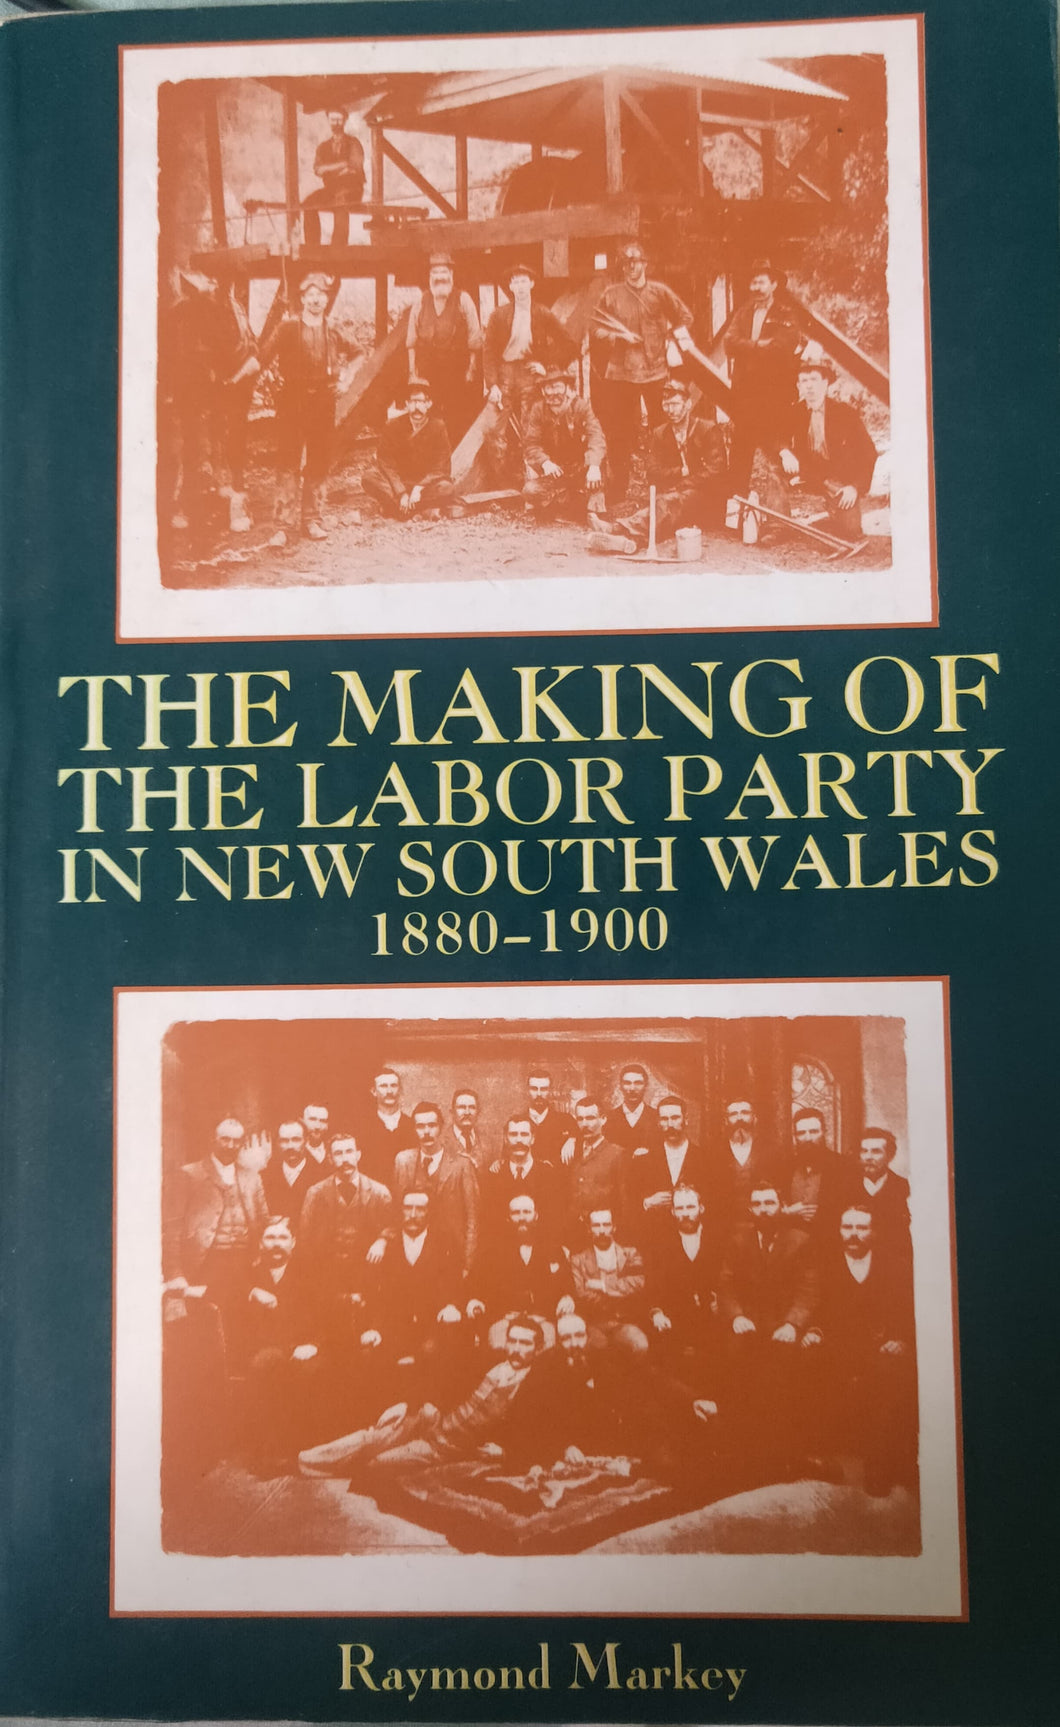 The Making of the Labor Party in New South Wales 1880-1900